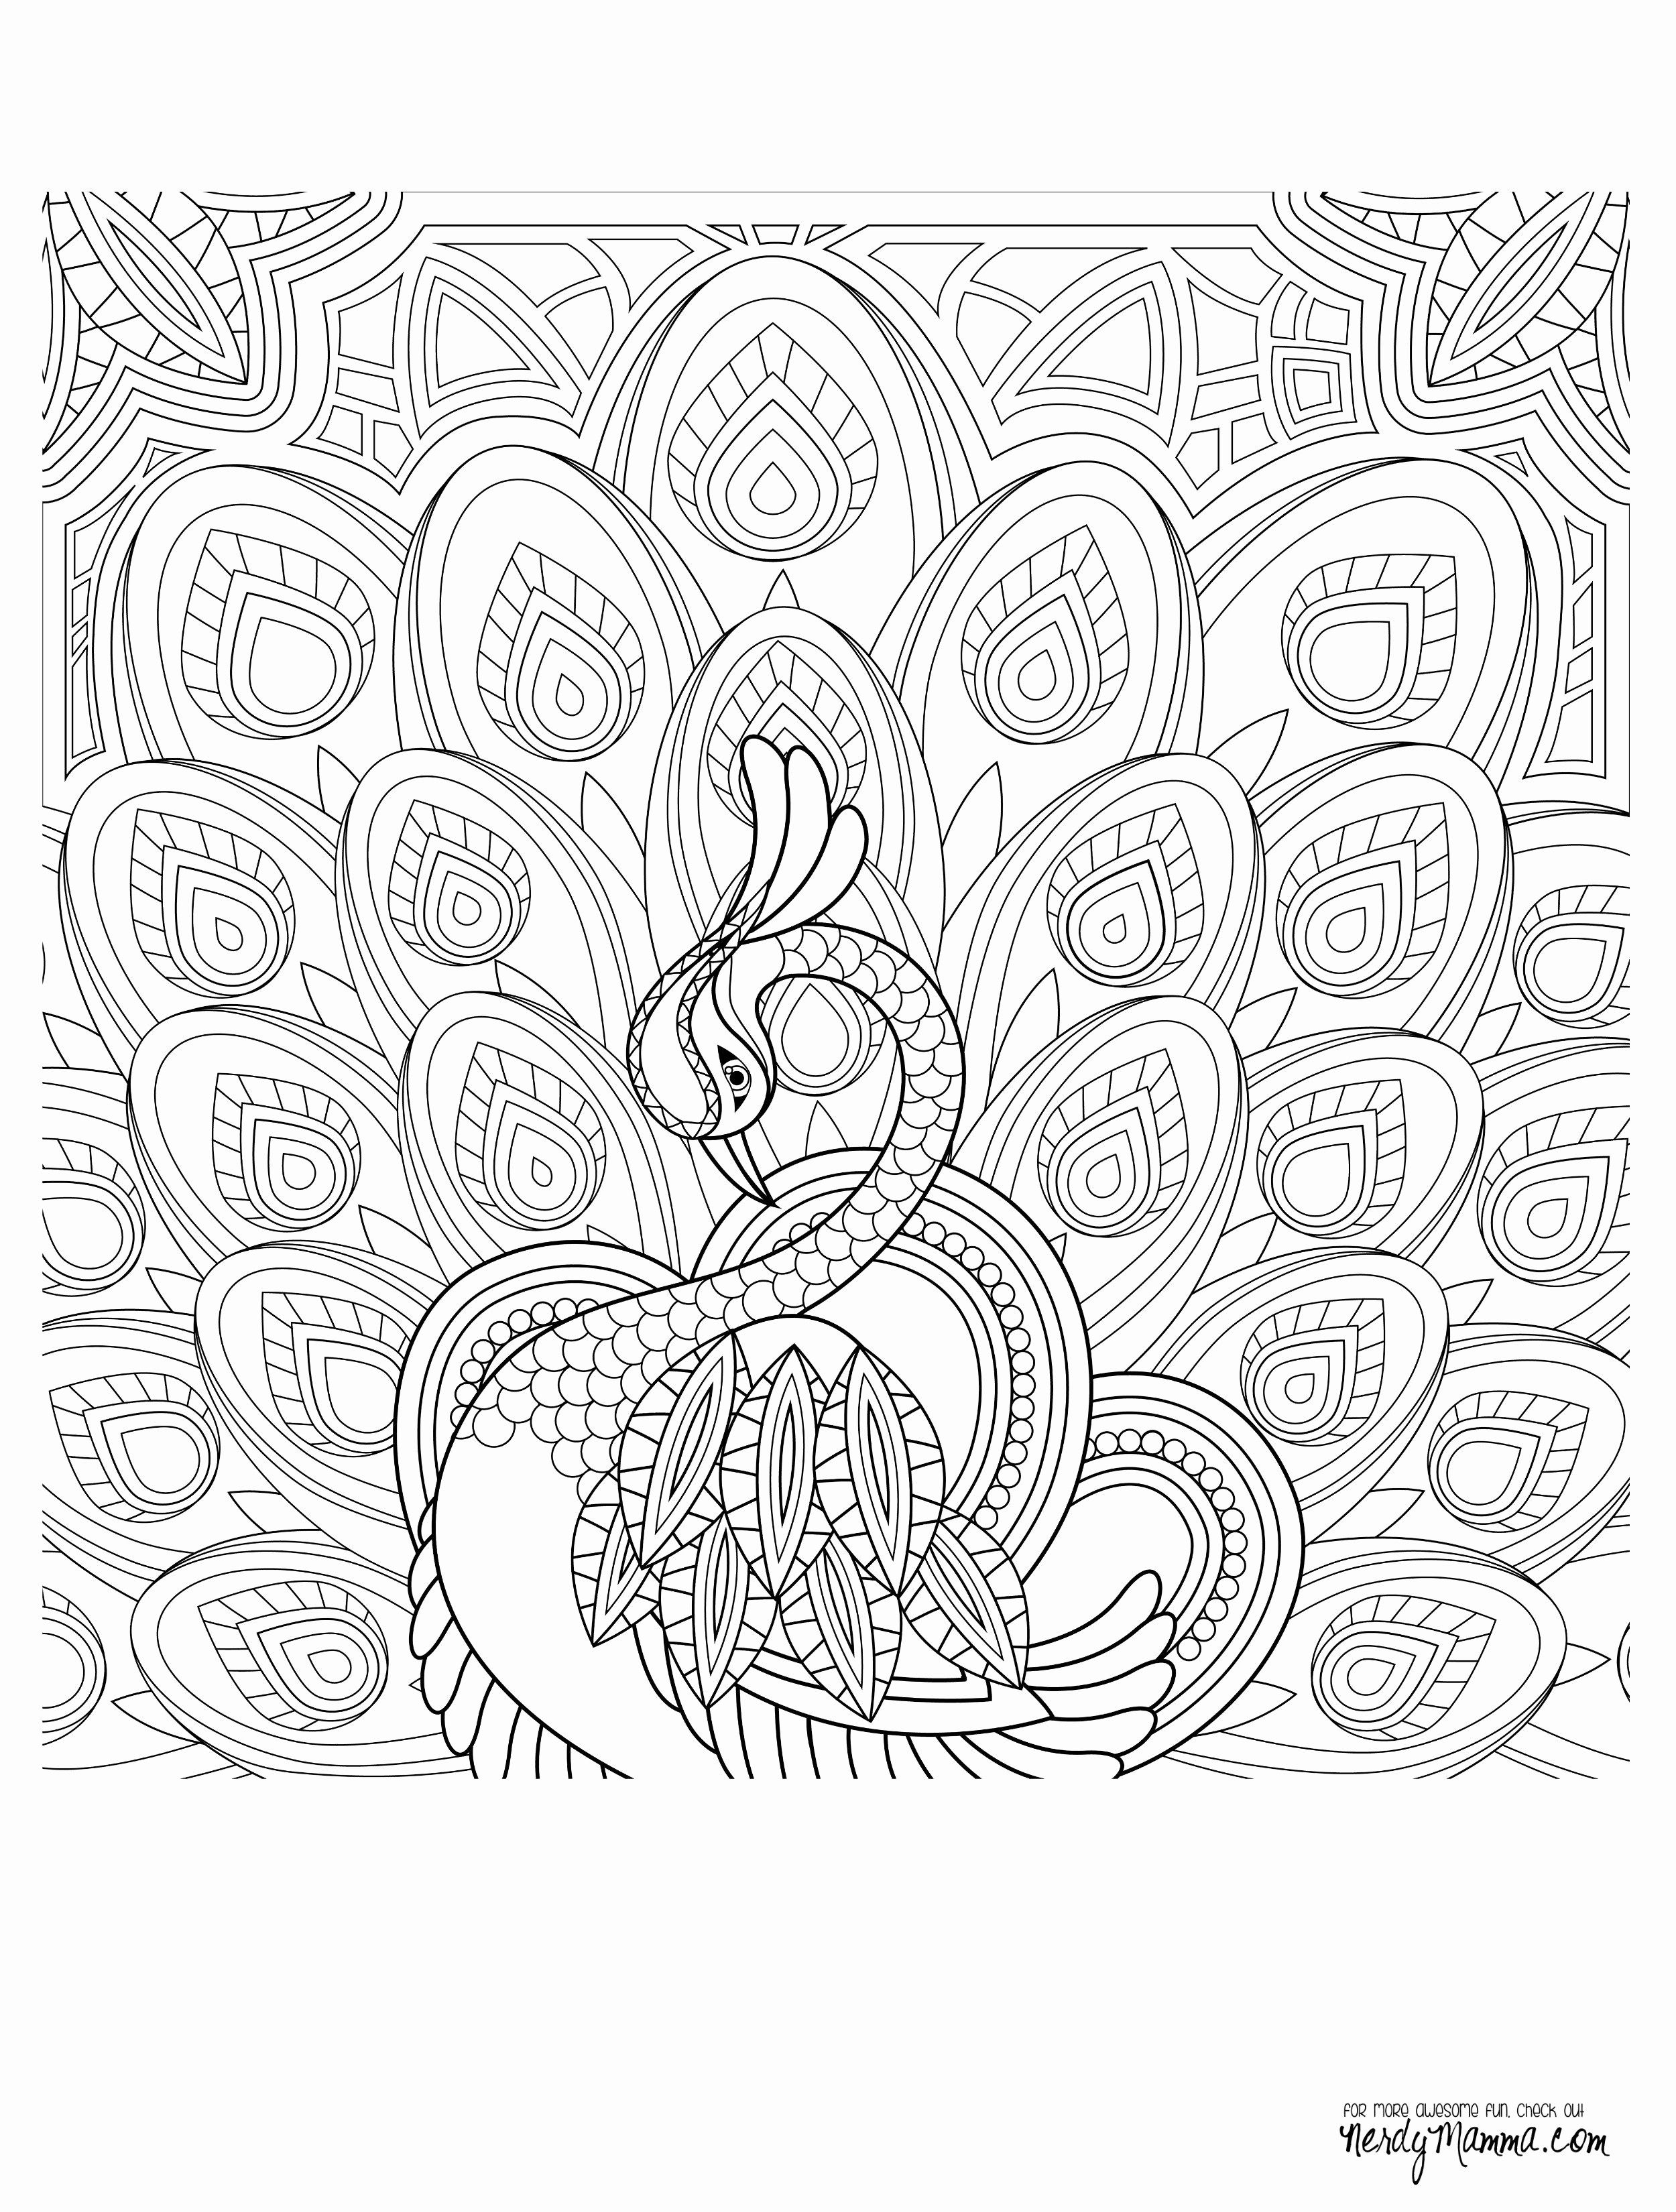 Marty Noble Coloring Pages  Collection 13p - To print for your project